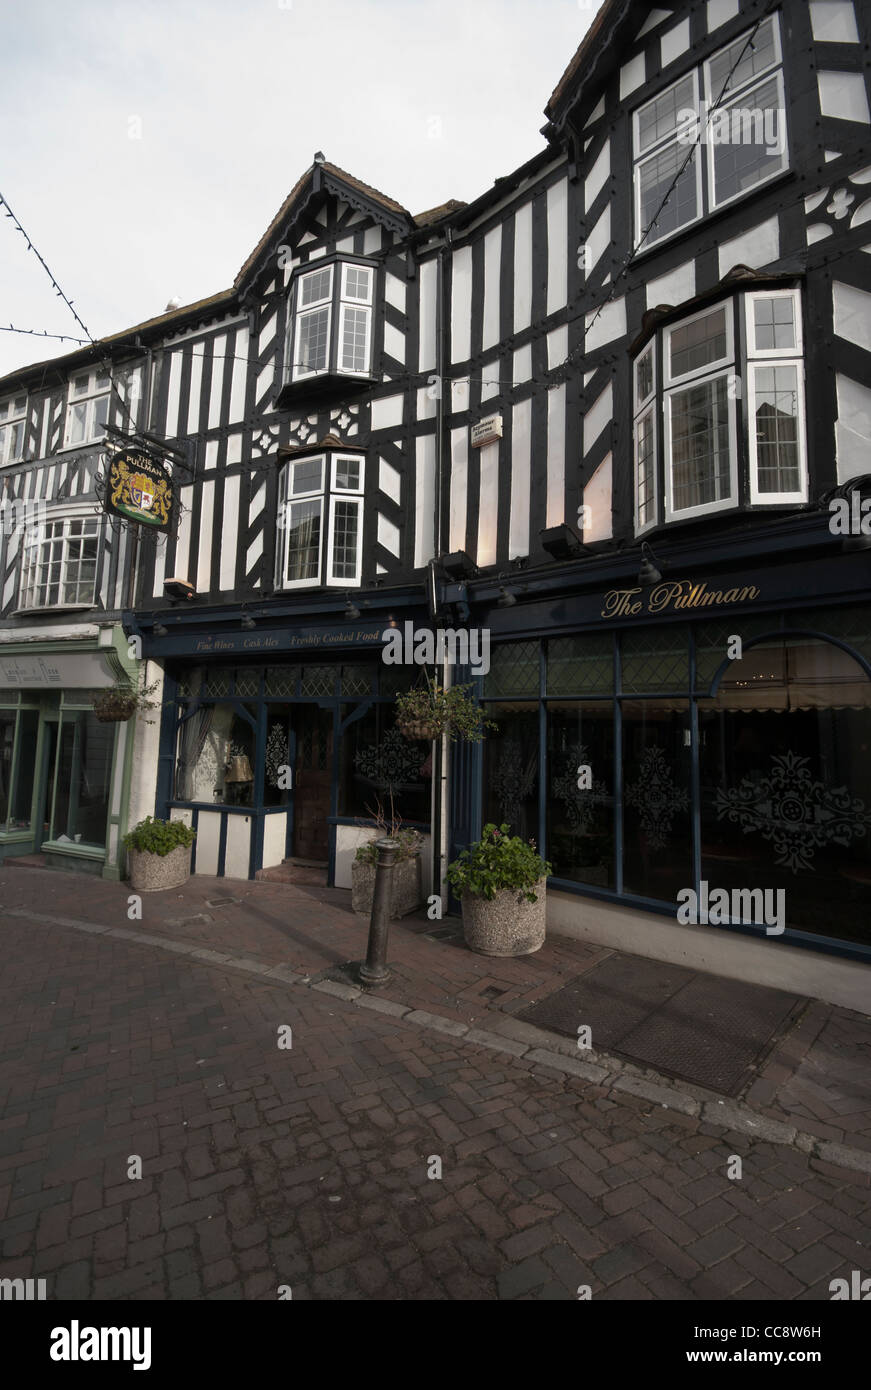 The Pullman Pub Church Street Folkestone Kent UK Half Tudor Style Timber Framed Pubs - Stock Image